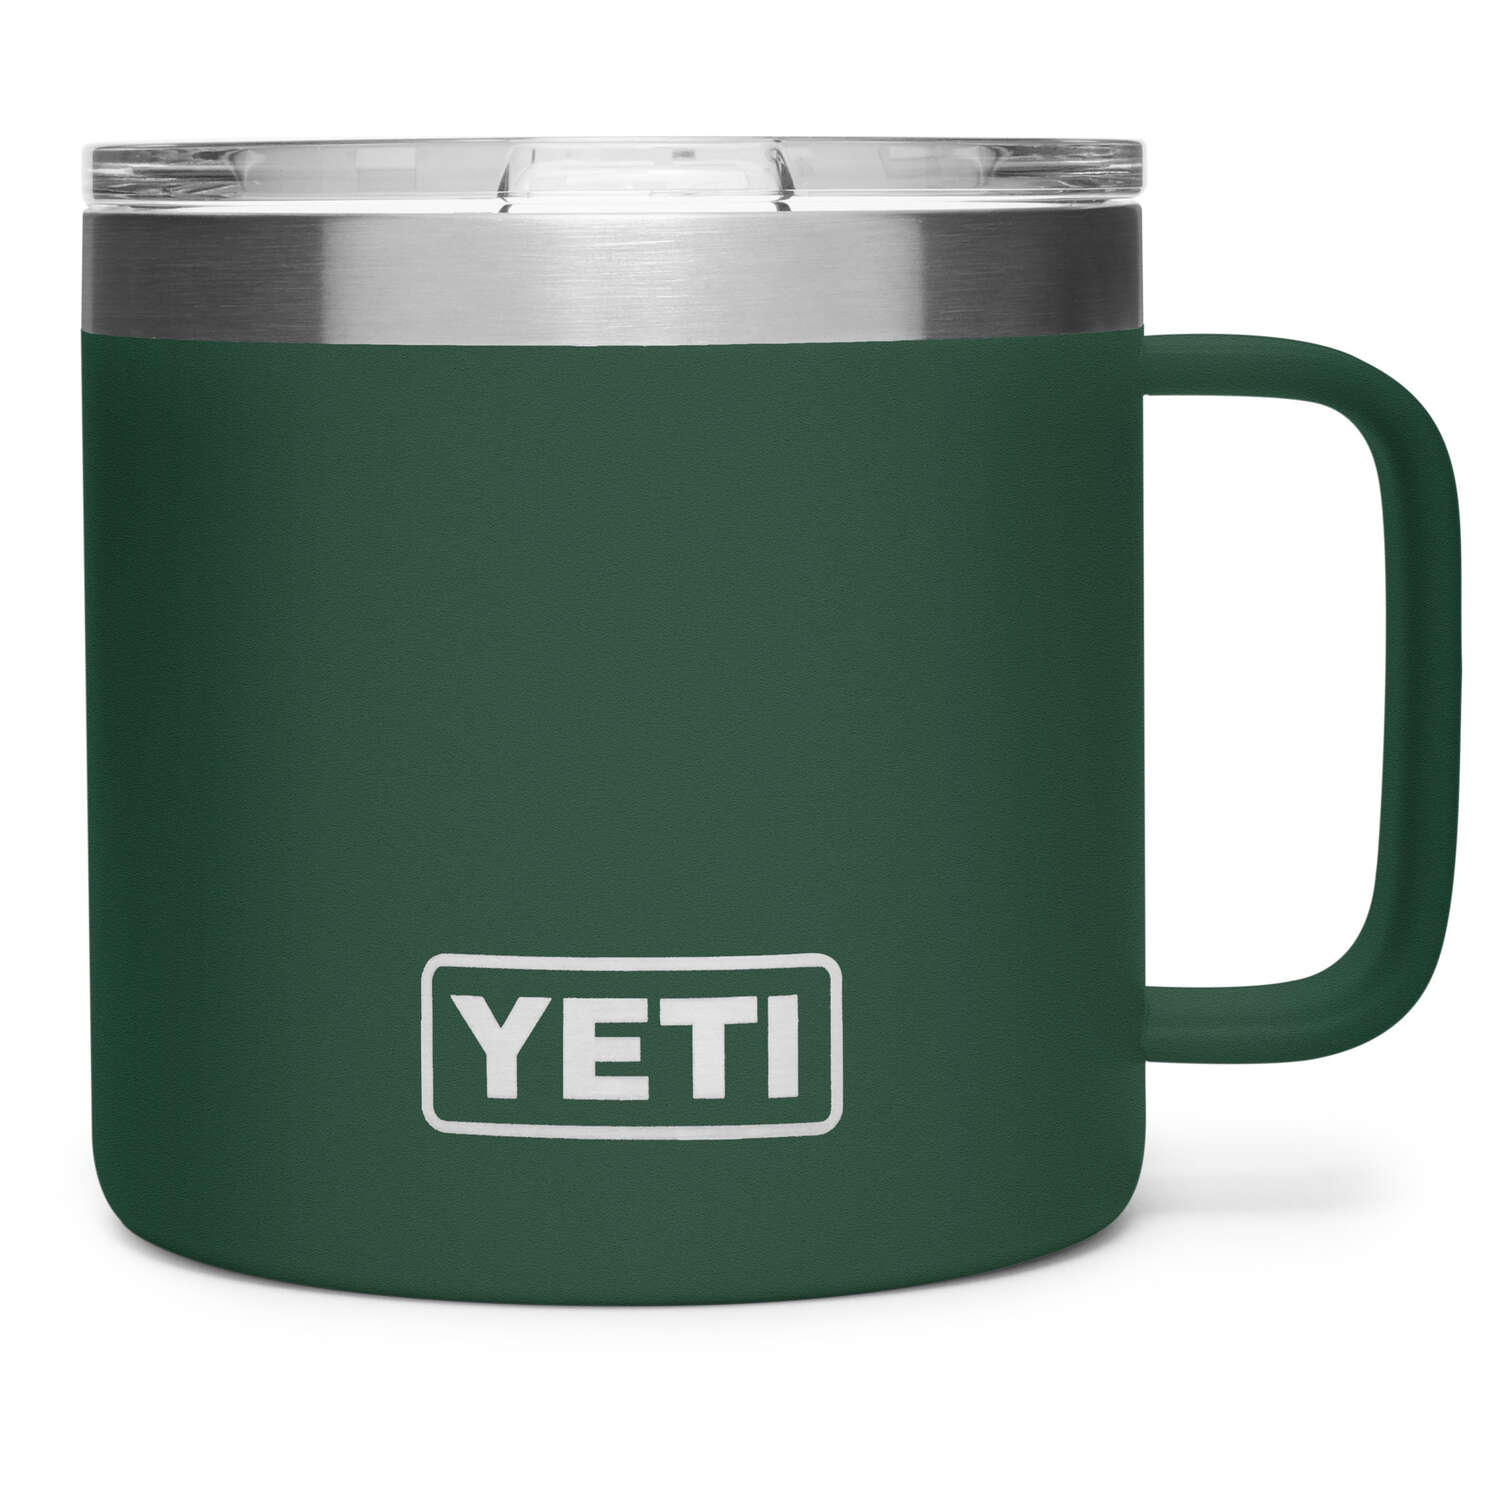 YETI  Rambler  14 oz. Mug with Lid  Northwoods Green